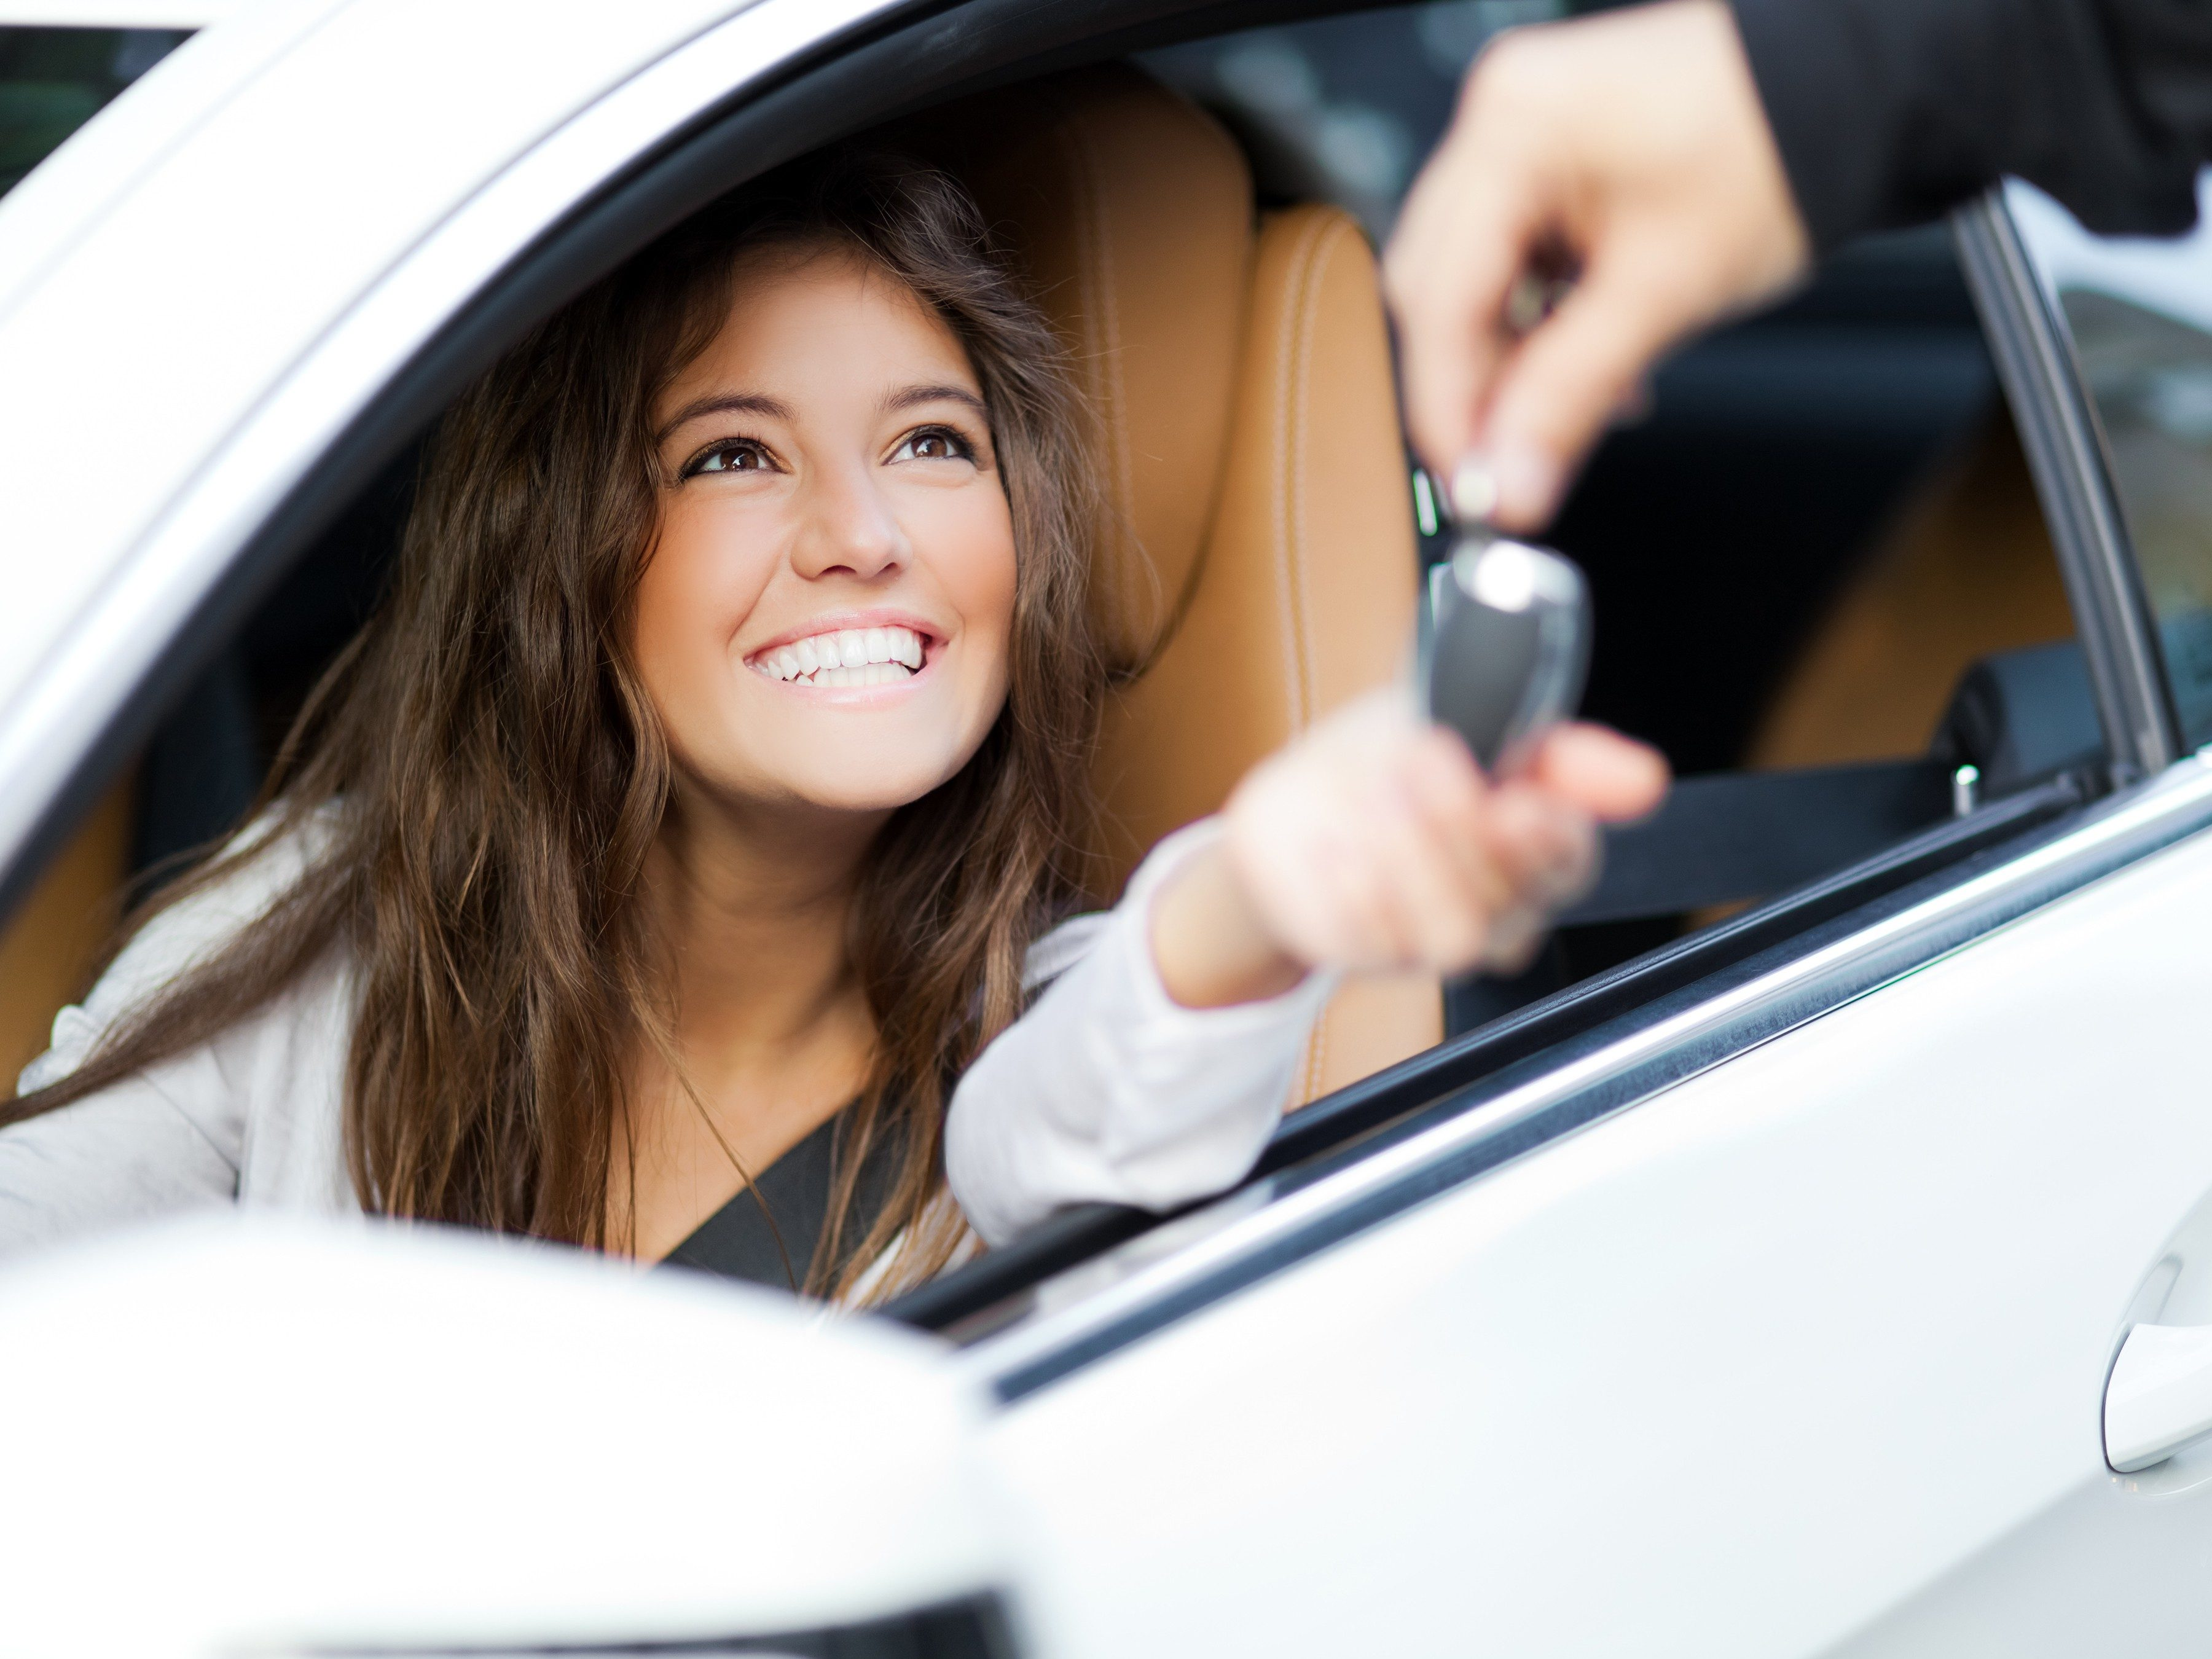 3. Car leases are a great option for frequent upgraders.